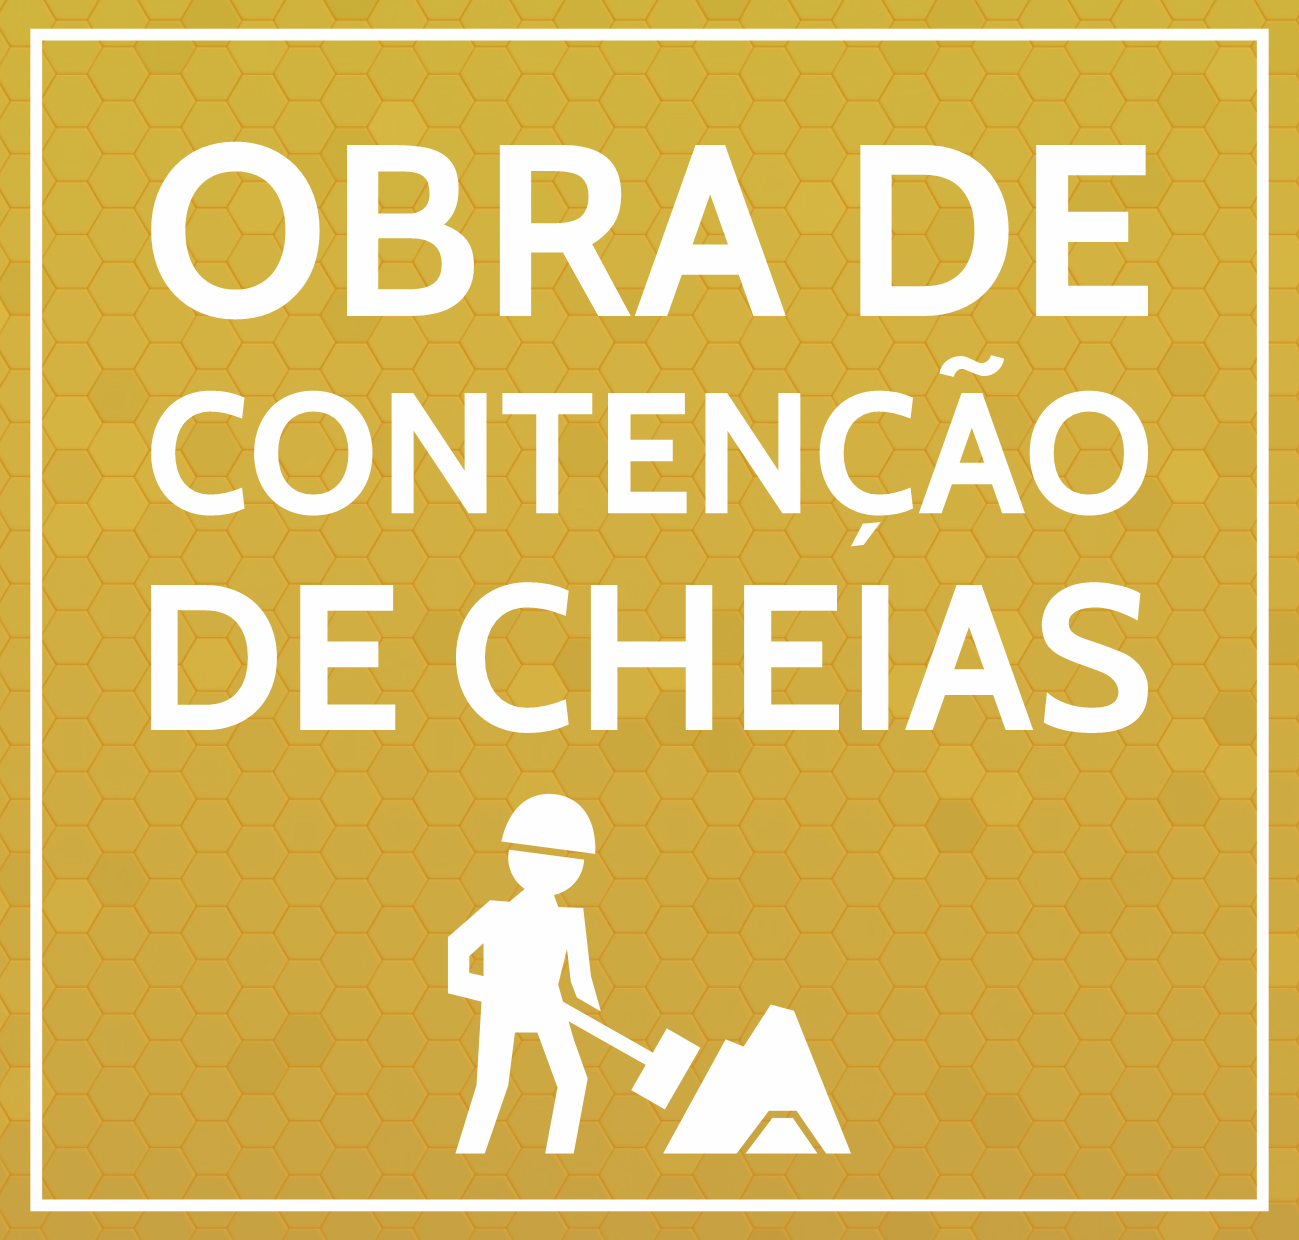 OBRA DE CONTENÇÃO DE CHEIAS